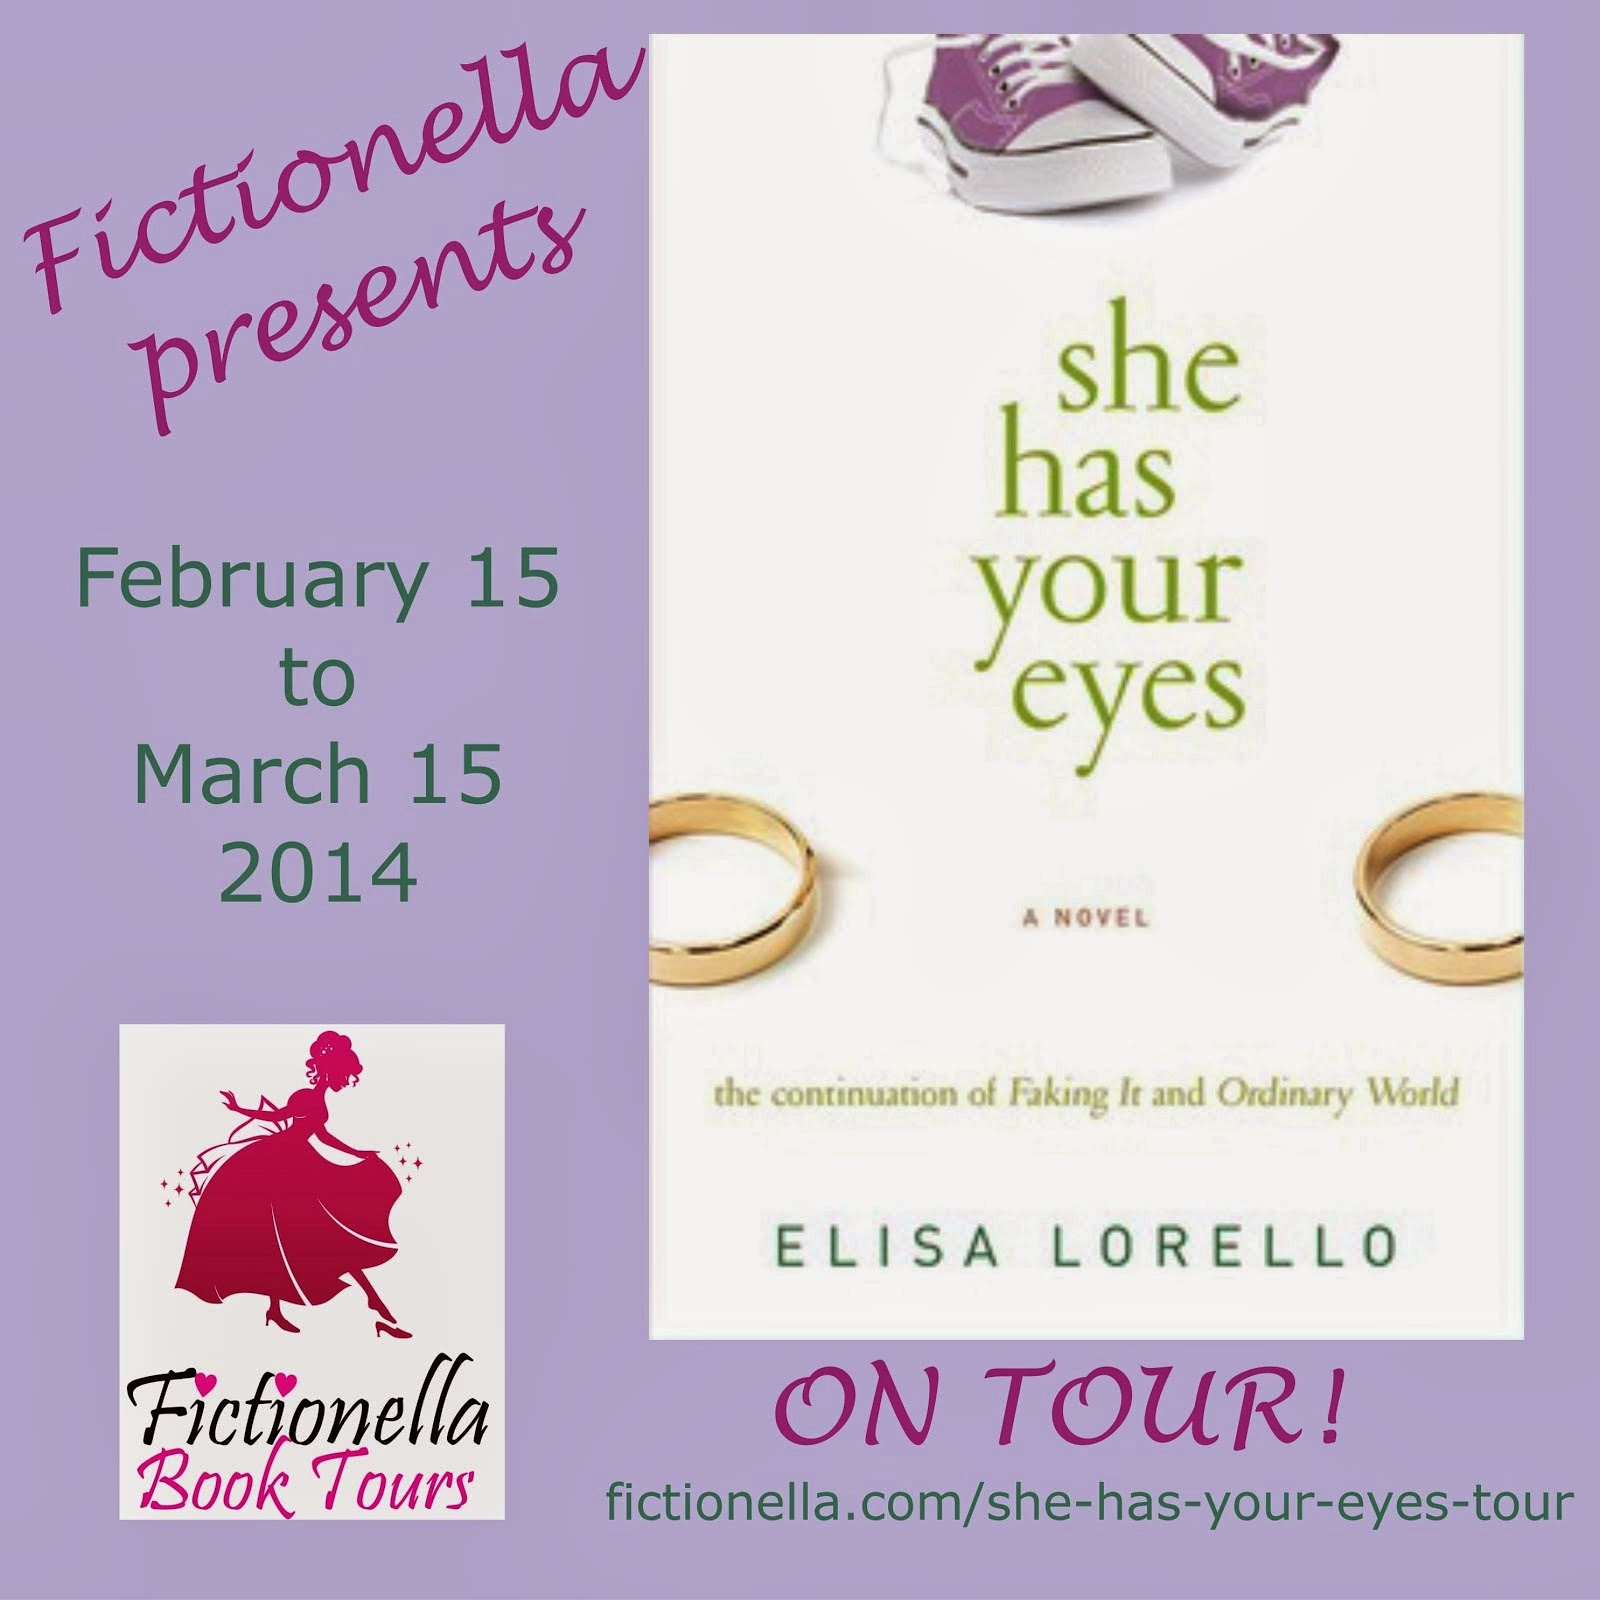 she has your eyes tour!